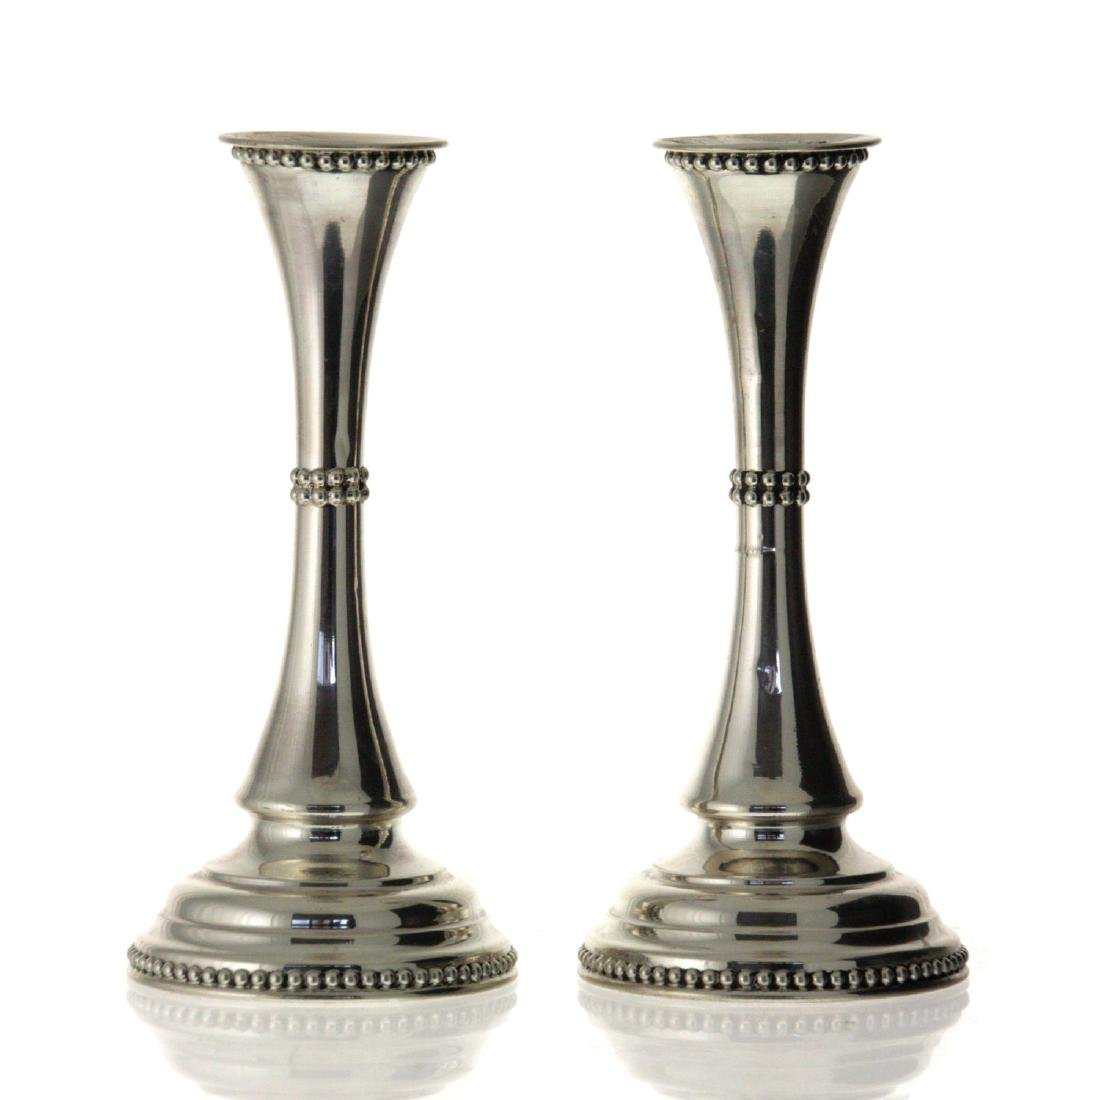 Pair of Sterling Silver Candlesticks.